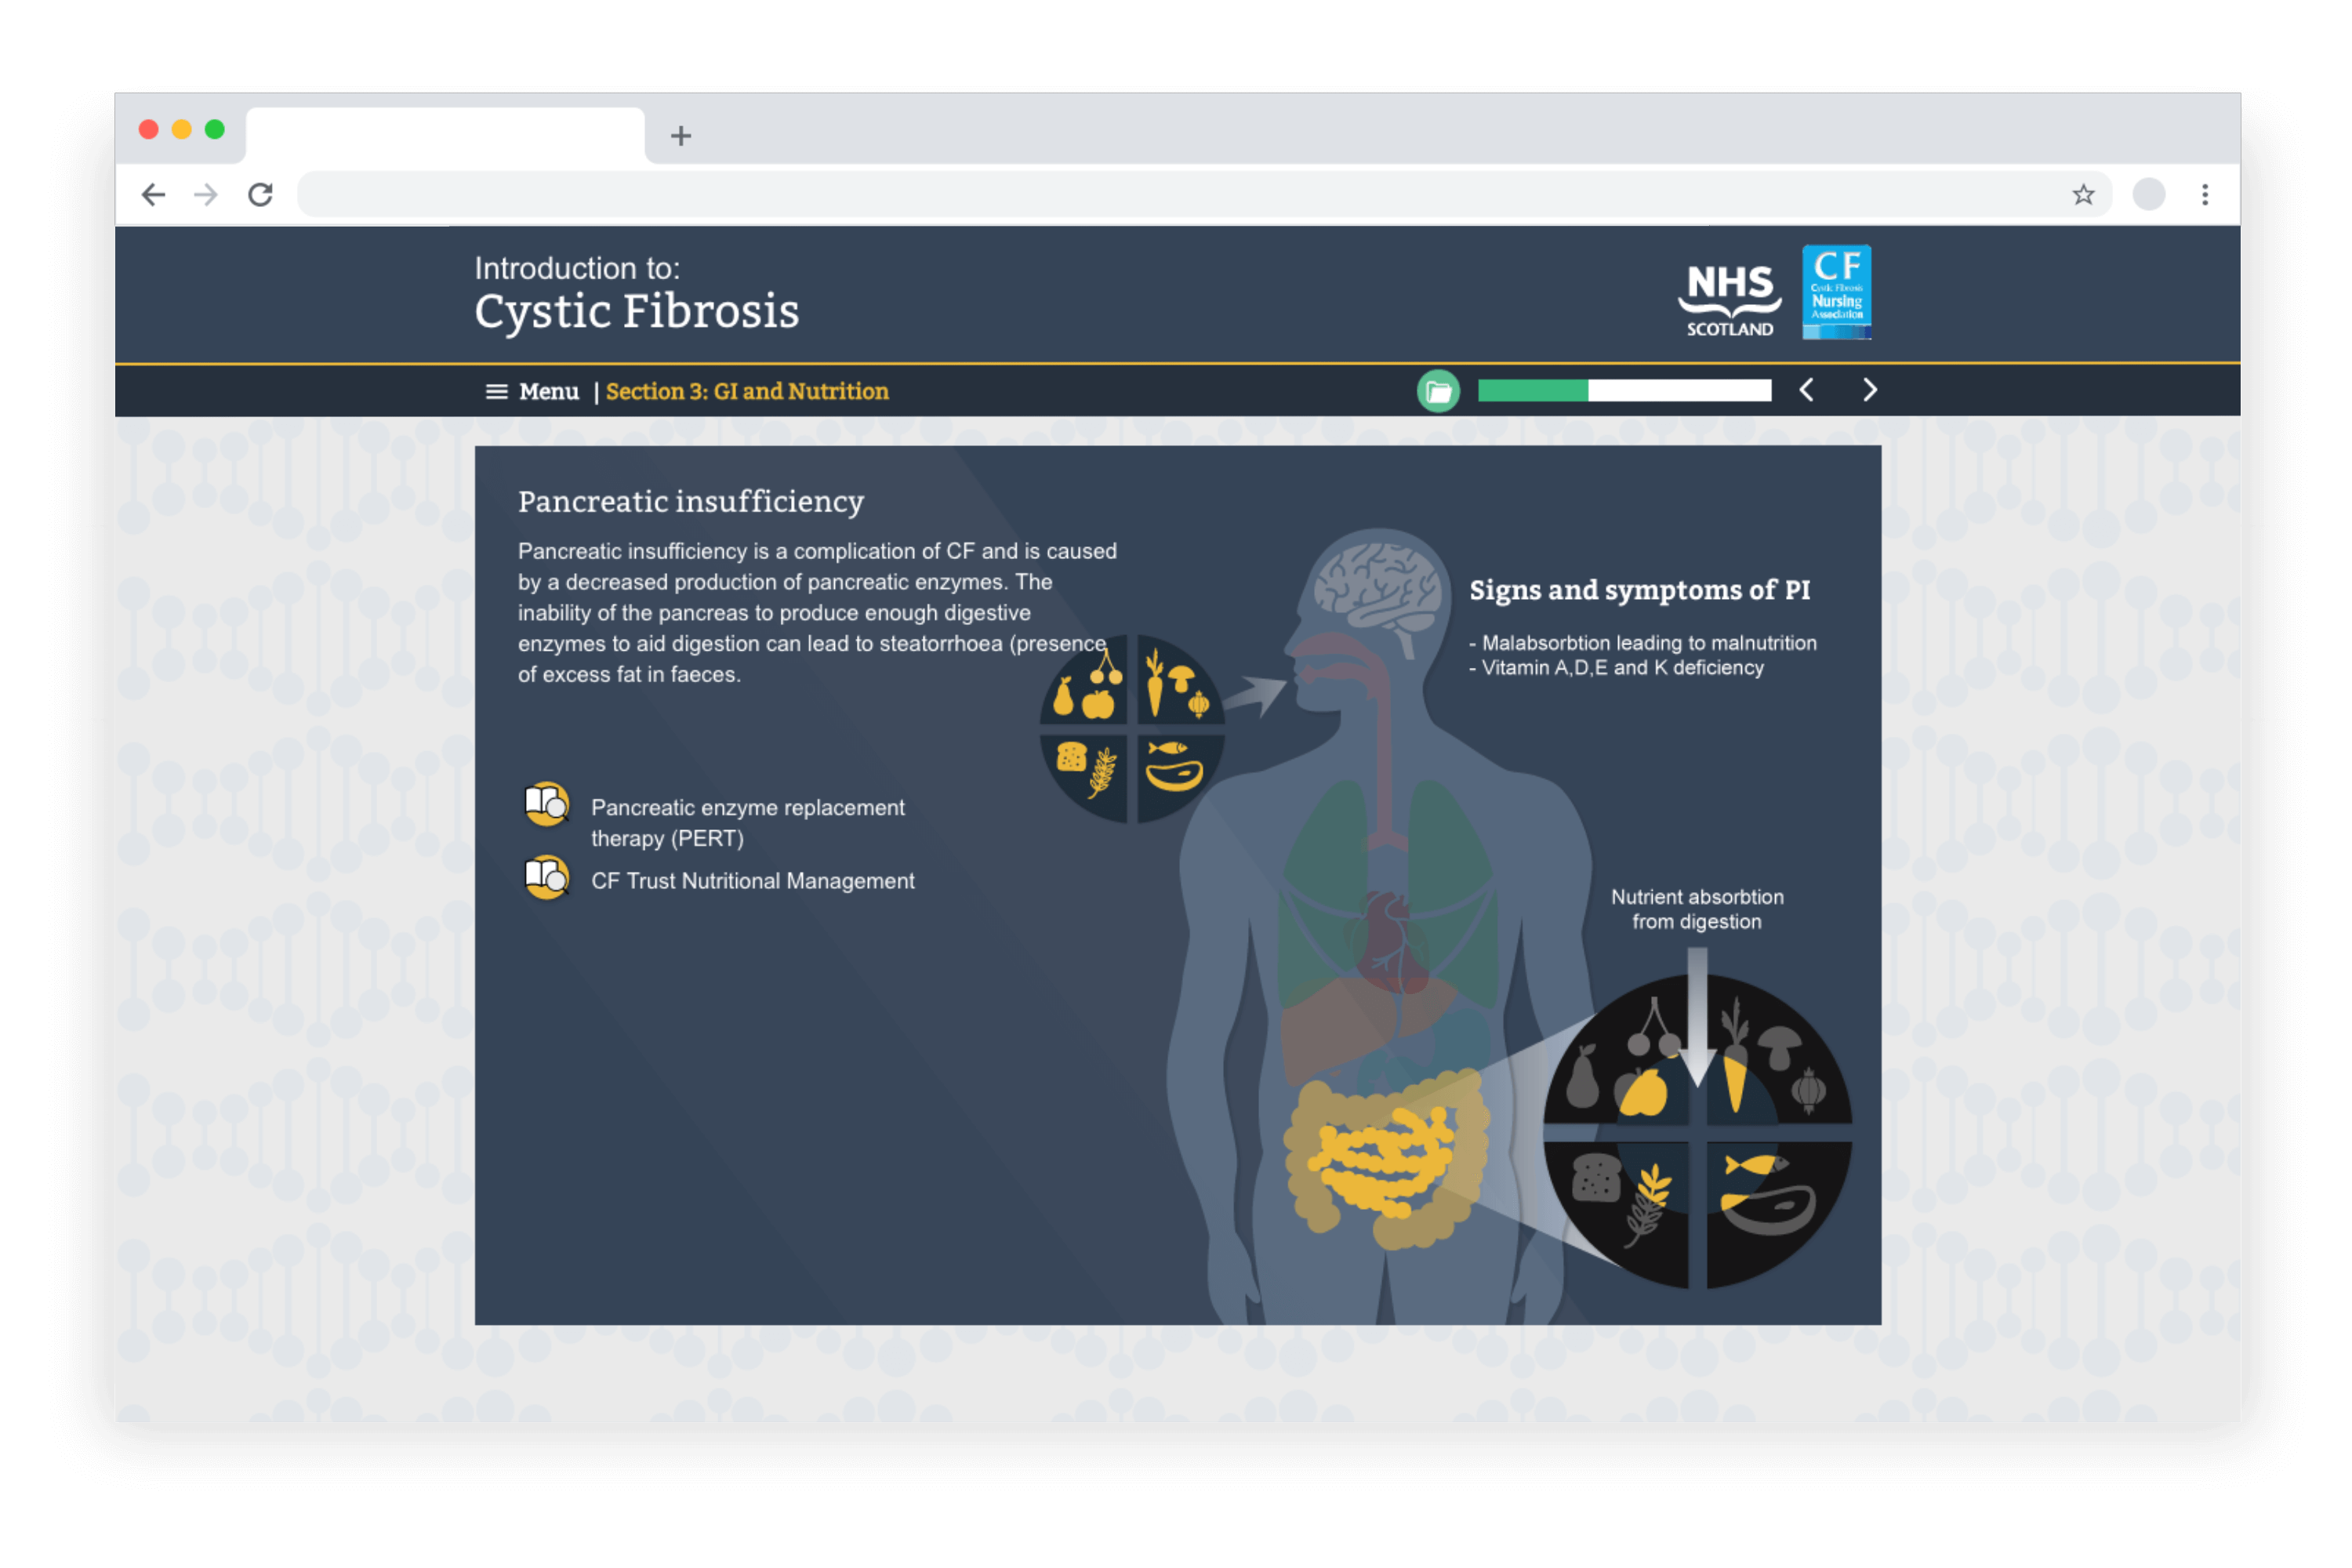 Example e-learning showing a Cystic Fibrosis course developed in LAB Advanced